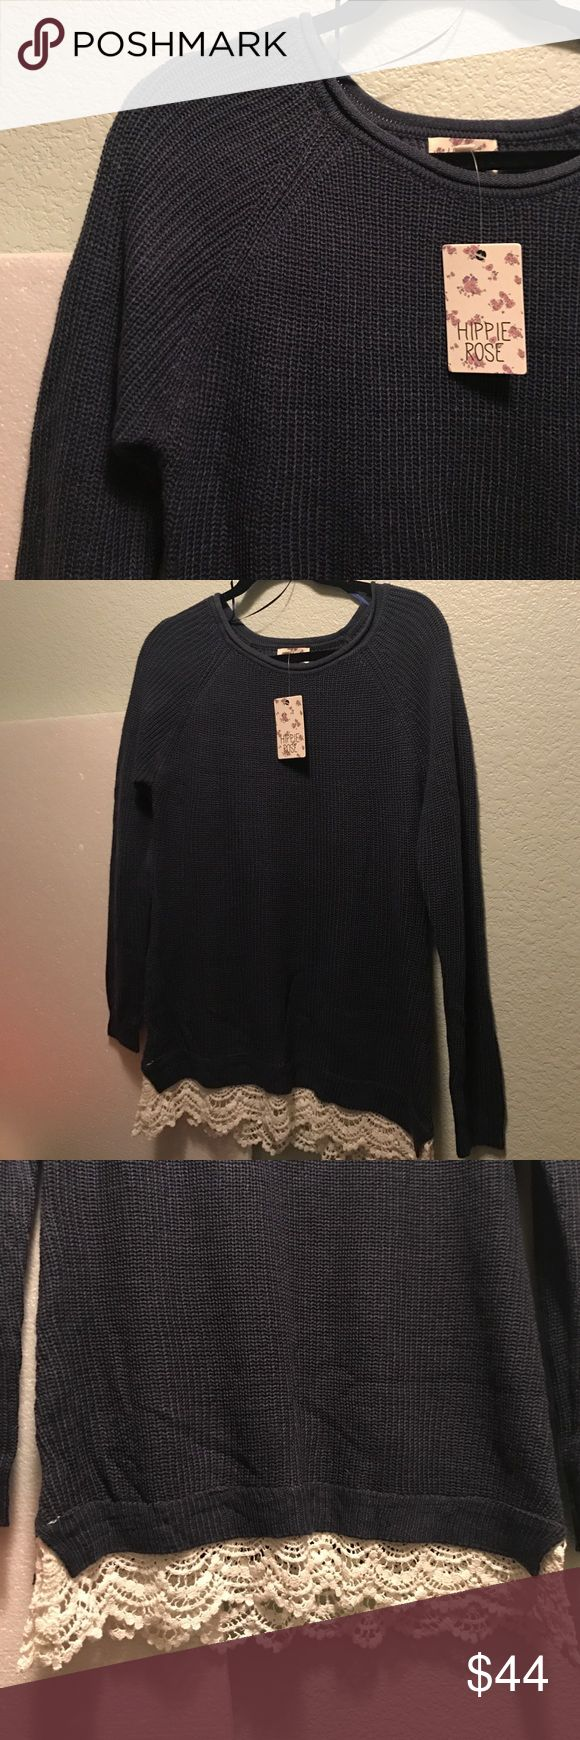 Navy Blue Sweater This is a Navy Blue sweater with lace edging  by Hippie Rose. Brand new with tags. Hippie Rose Sweaters Crew & Scoop Necks